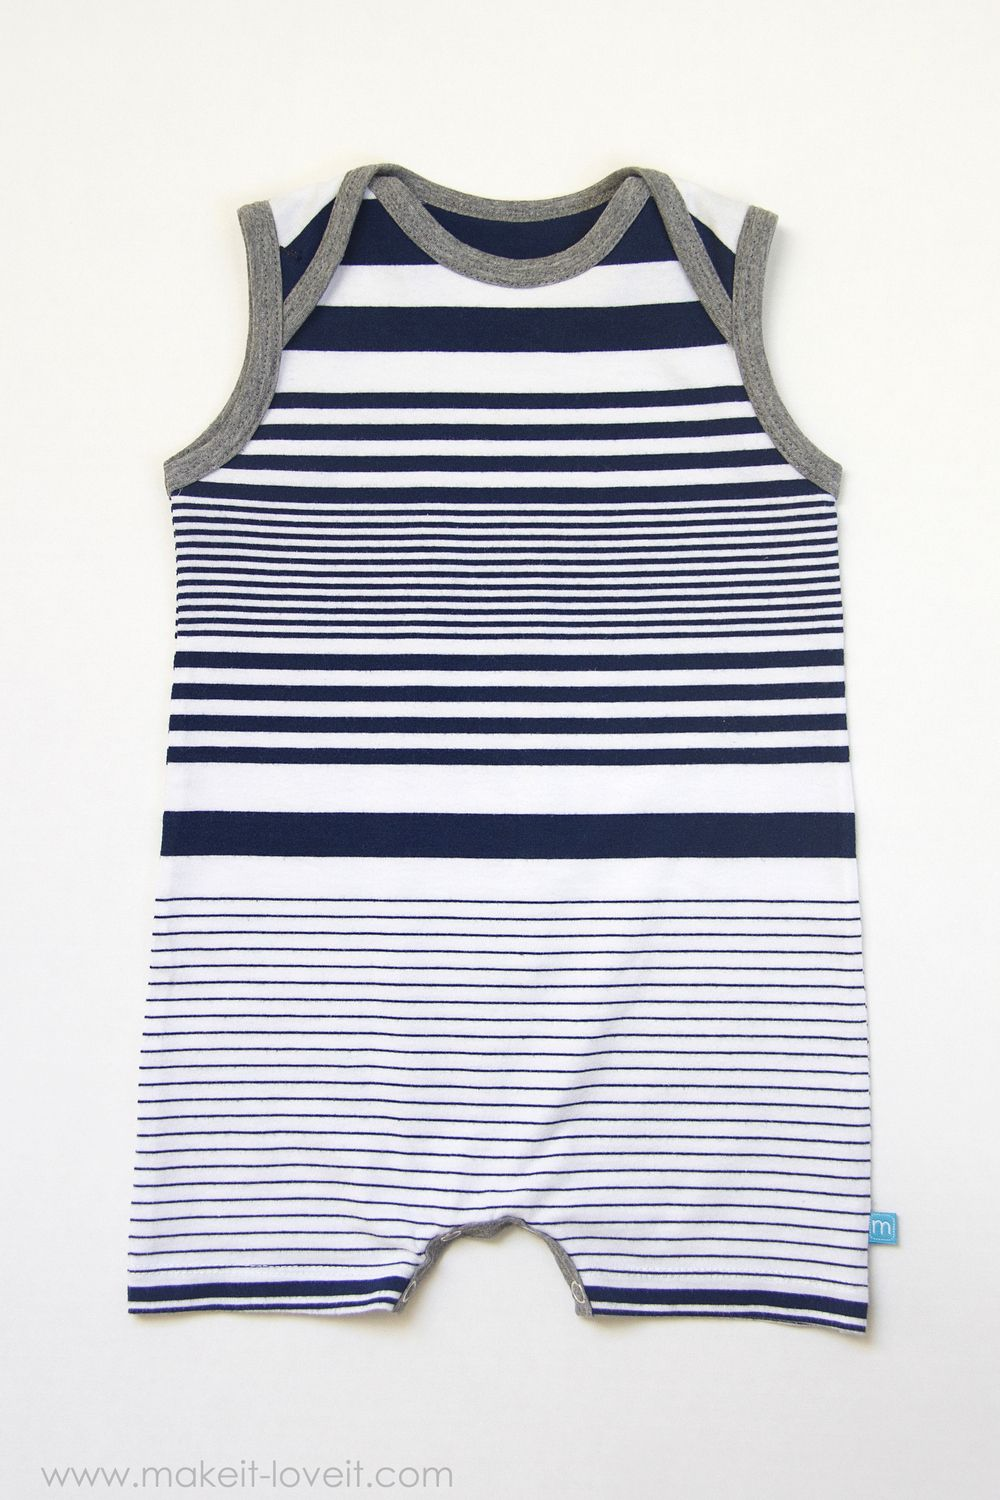 7a5f699d7 Tank Top Romper with Envelope Neckline (...from an old Tshirt)